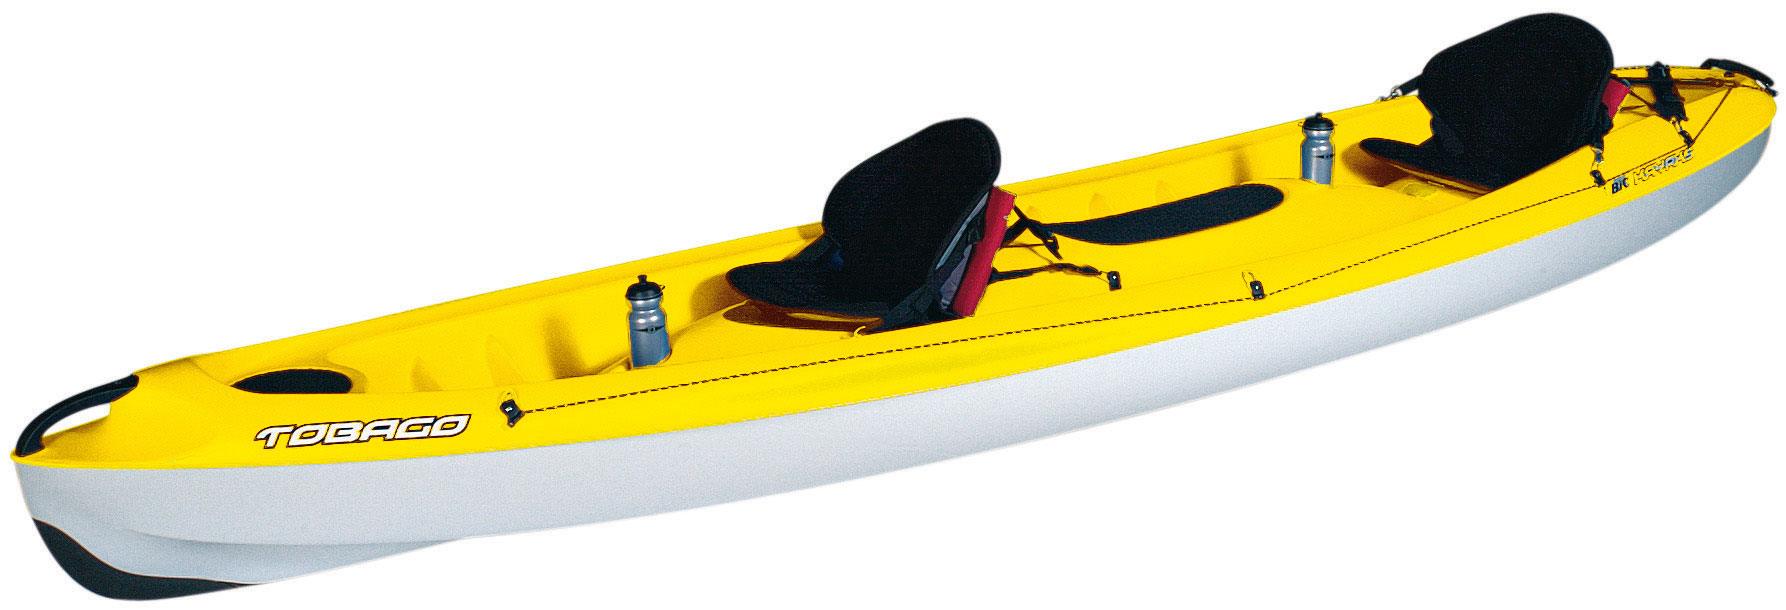 "Kayak and Canoe The Bic Tobago is the kayak for all the family and all uses. Its ergonomic seating positions and well researched design provide for numerous possibilities of use: paddling alone, with 1 or 2 children, 2 adults, even 2 adults and 1 child. The fluid hull lines mean it's also well suited to sport kayaking, with the additional crew of your choice, all with maximum comfort and safety. It's a kayak that's fun, stable and fast.Key Features of the Bic Tobago Kayak: Ideal tandem paddling Sport kayaking Family outings Length: 12'11"" / 3.95m Width: 31.5"" / 0.80m Weight: 70lbs / 32kg Mai load: 550lbs / 250kg Capacity: 2 adults + 1 child - $749.95"